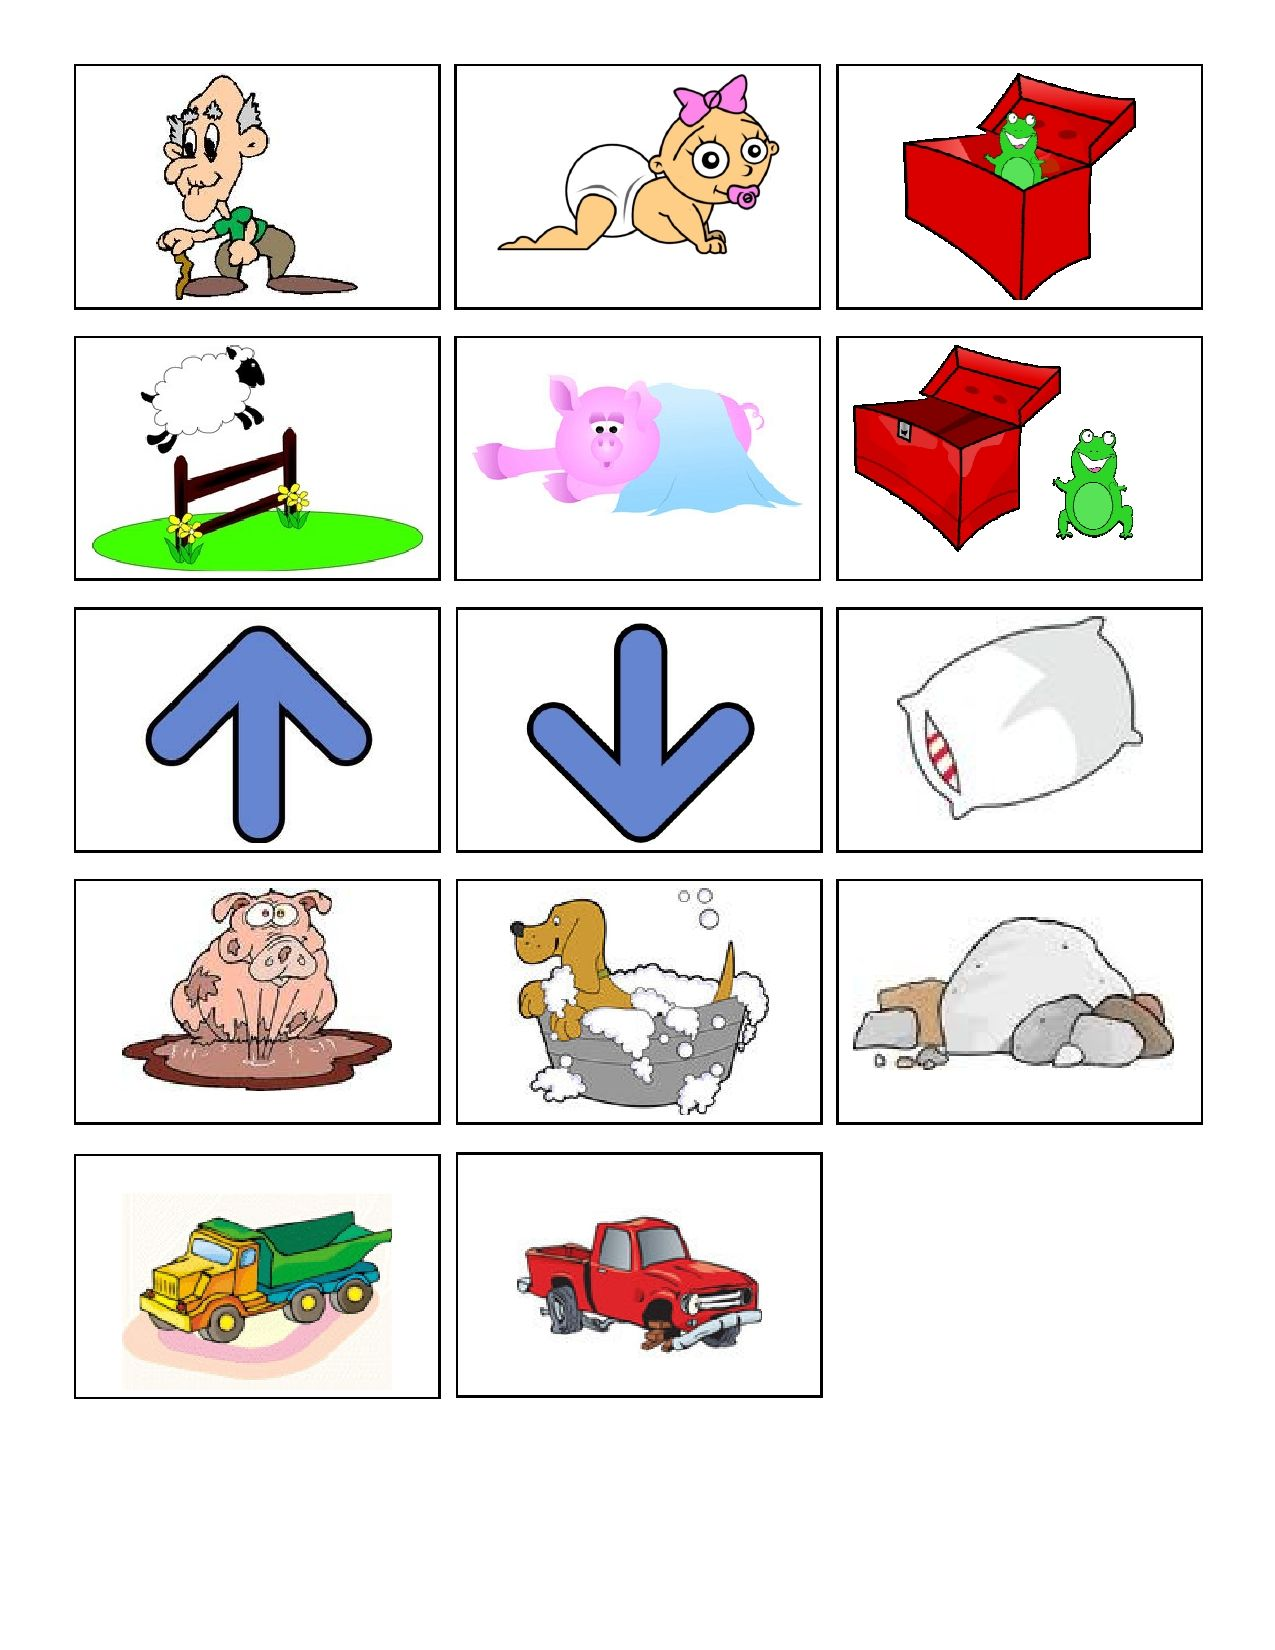 The Opposite Game Is A Fun Activity For Preschoolers To Learn Opposite Concepts Such As Up Down